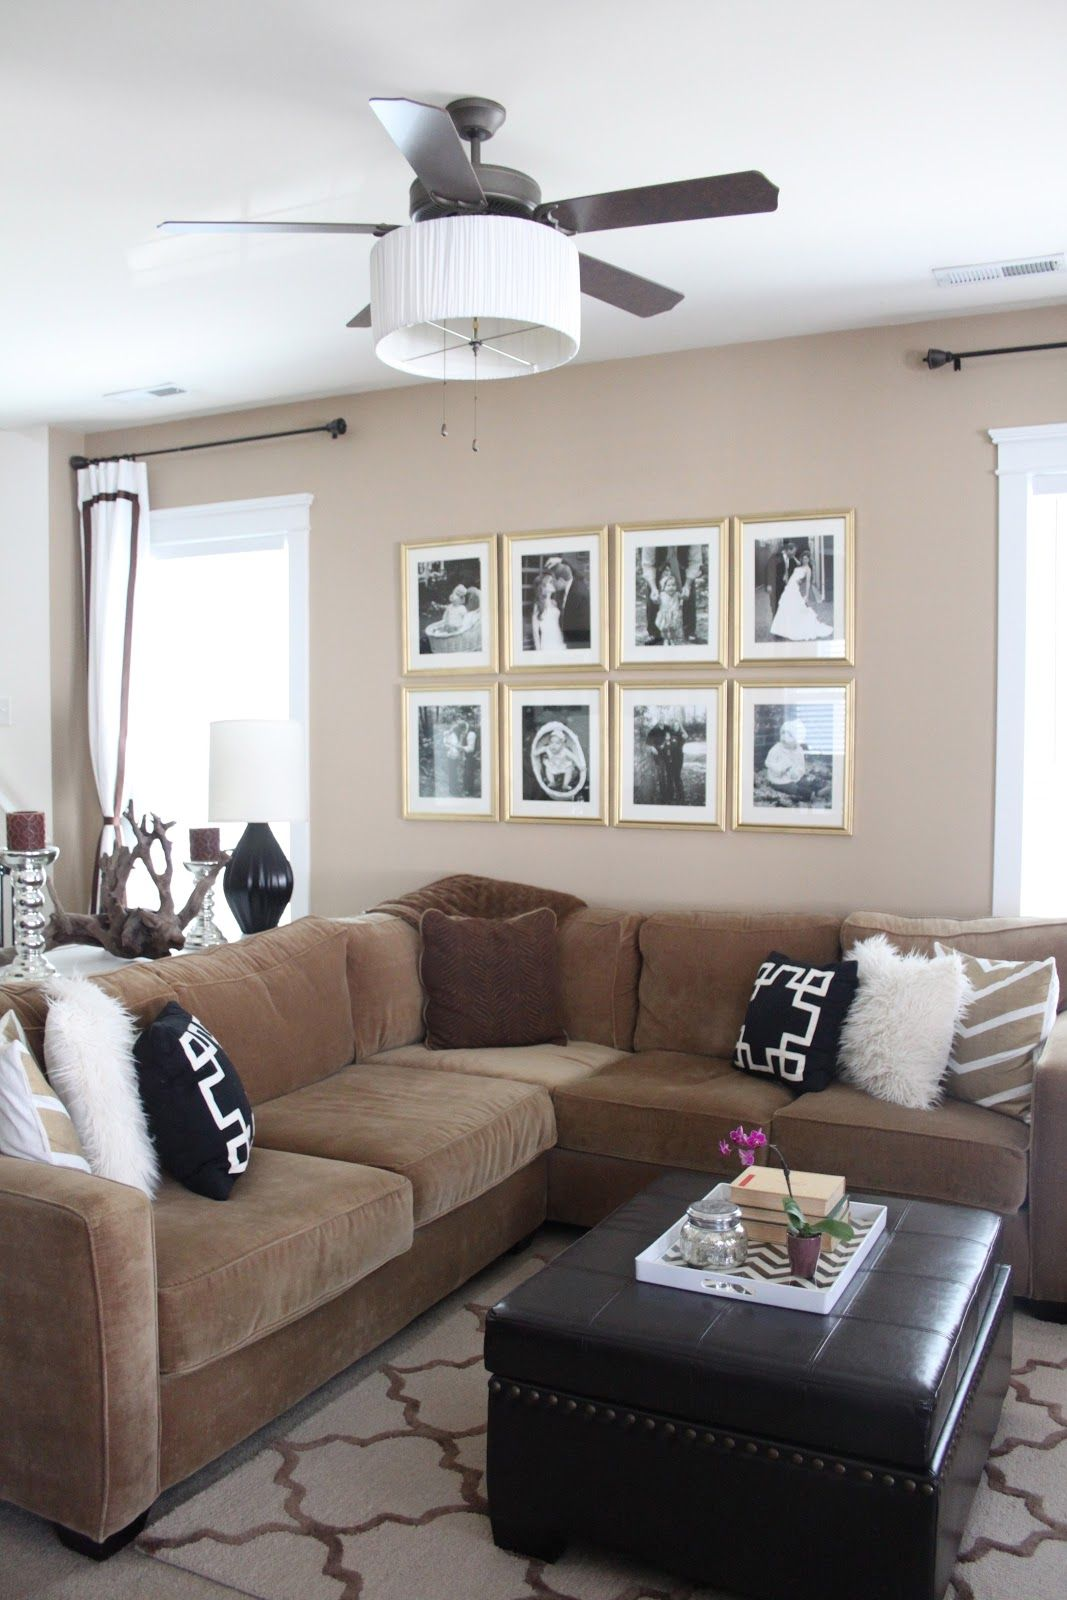 37++ Living room fans with lights ideas